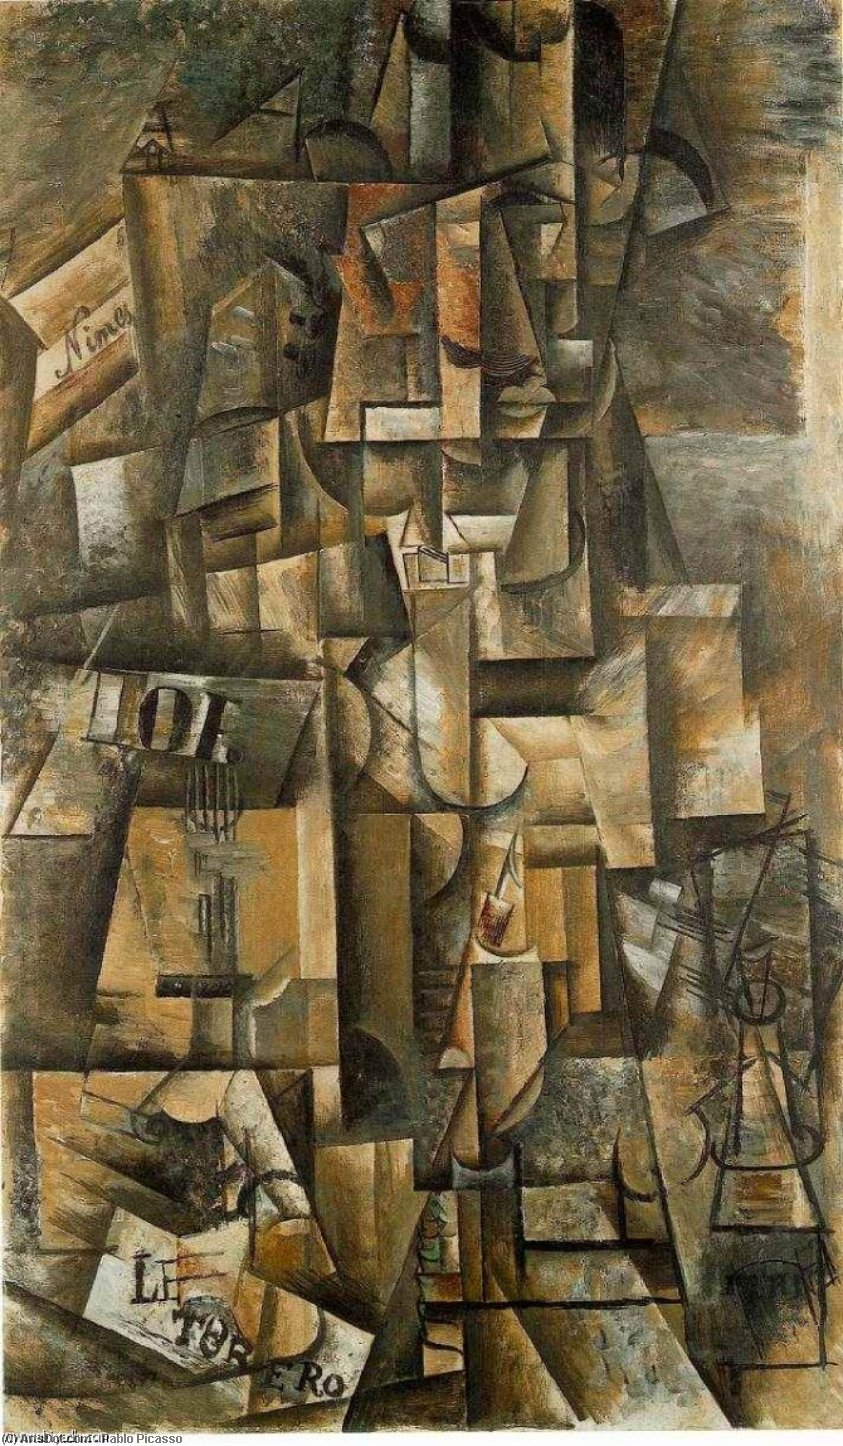 Order Art Reproductions | The aficionado (The torero), 1912 by Pablo Picasso (1881-1973, Spain) | ArtsDot.com